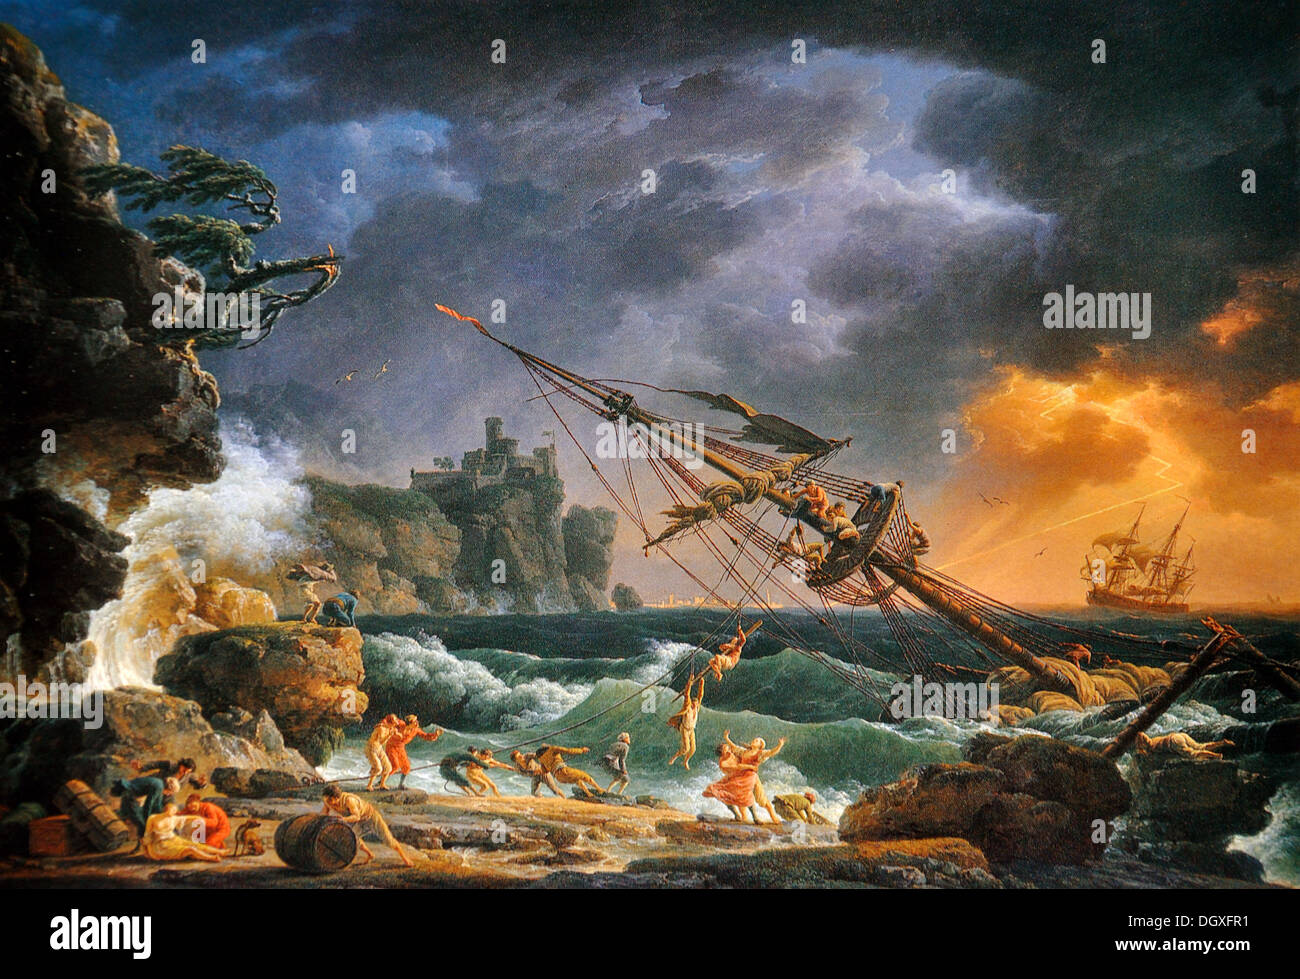 The Shipwreck - by Claude-Joseph Vernet, 1772 - Stock Image